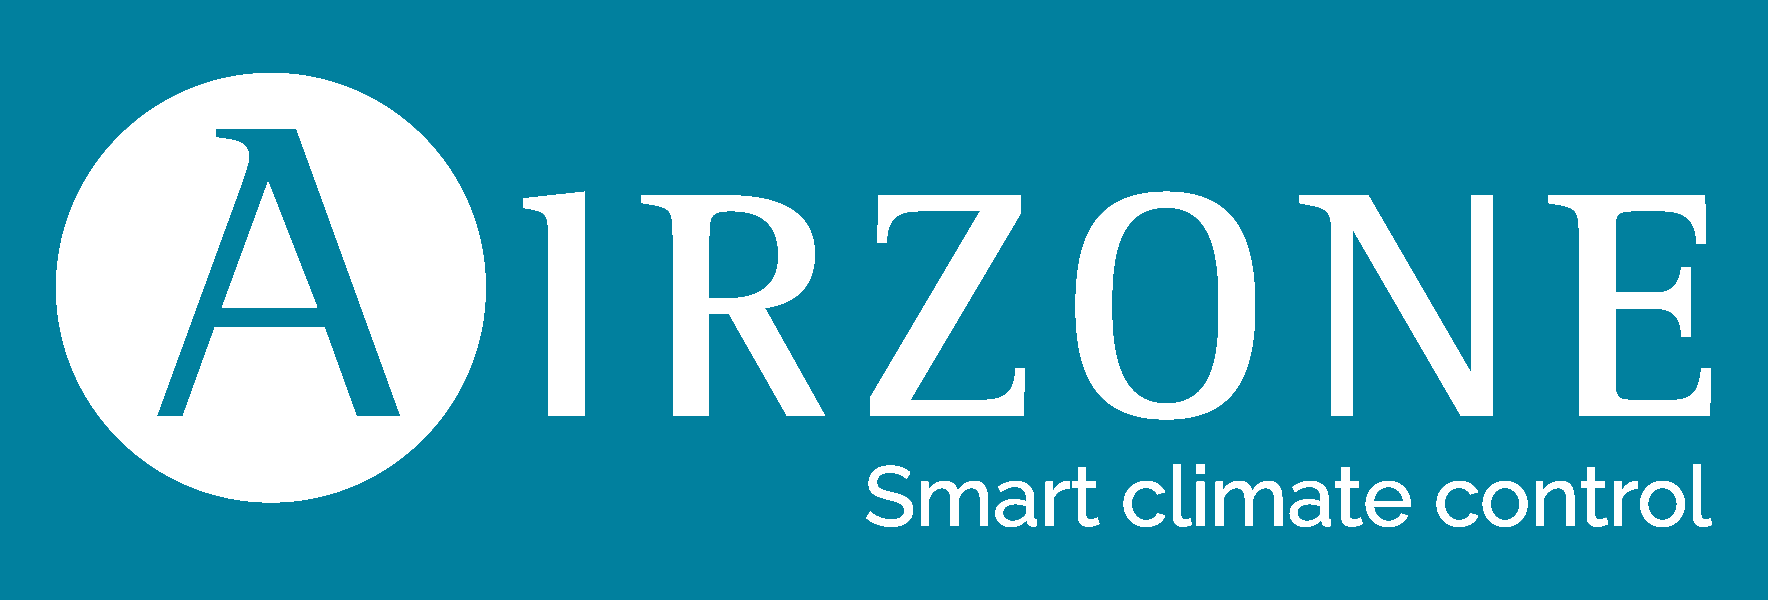 airzone_logo_background_blue